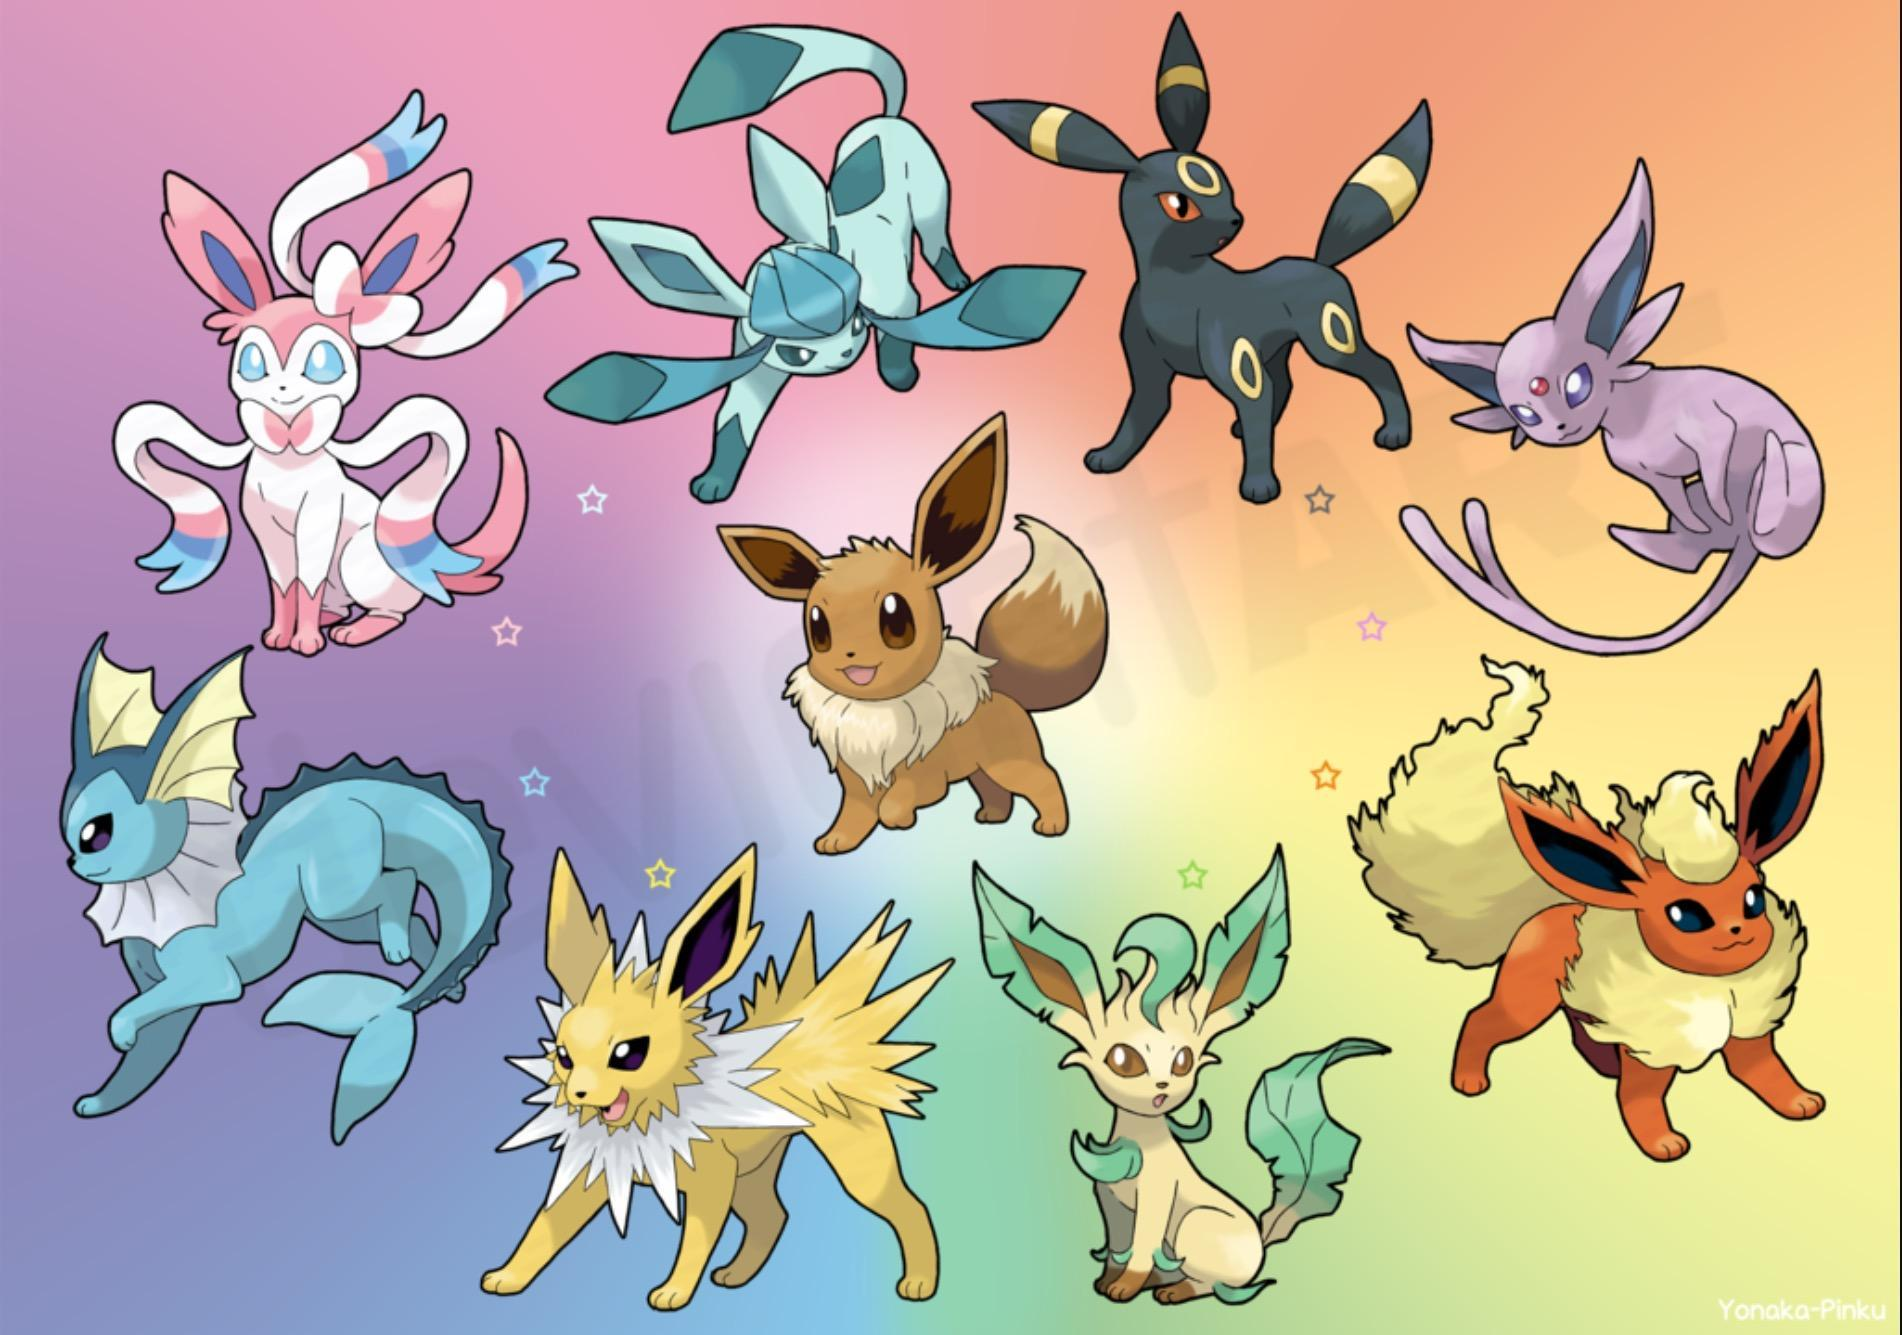 What do the eeveelutions think of you?